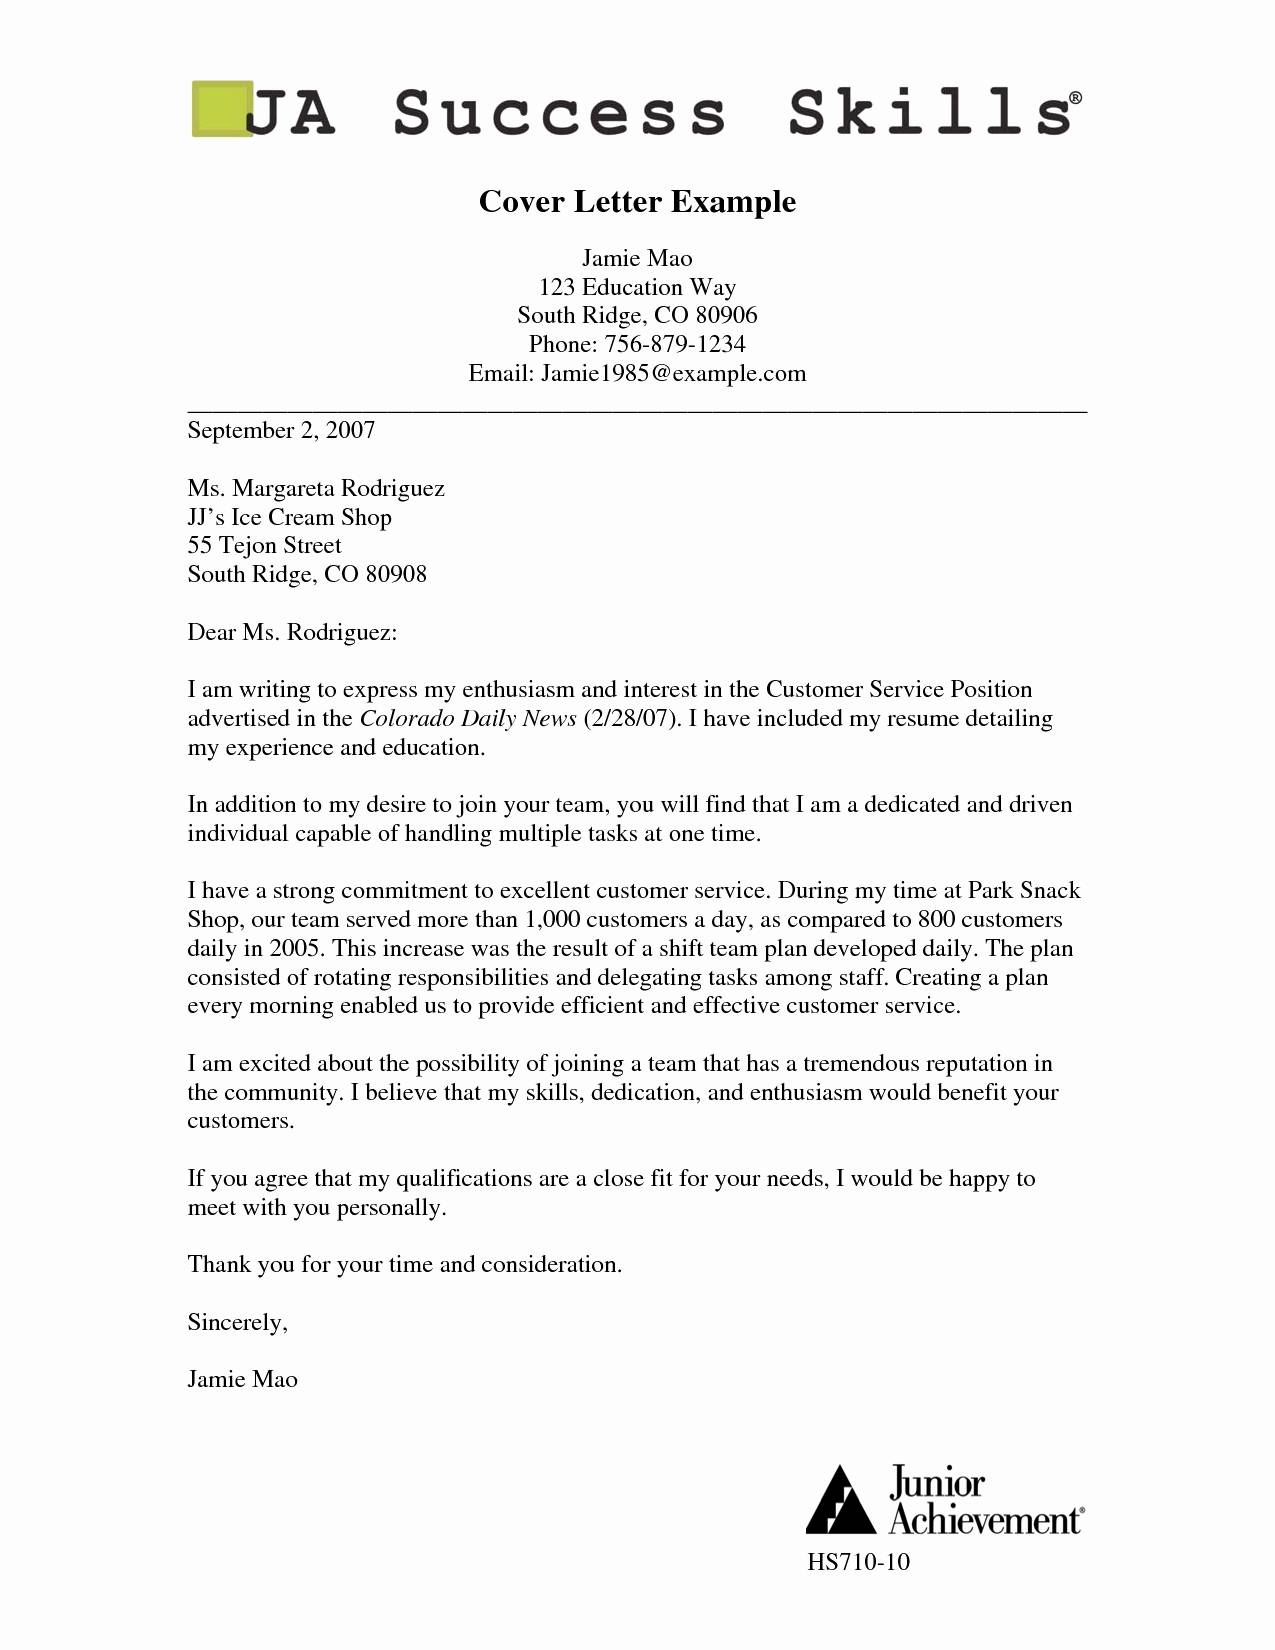 Increase Letter Template - Examples Covering Letters for Teaching Jobs Unique Covering